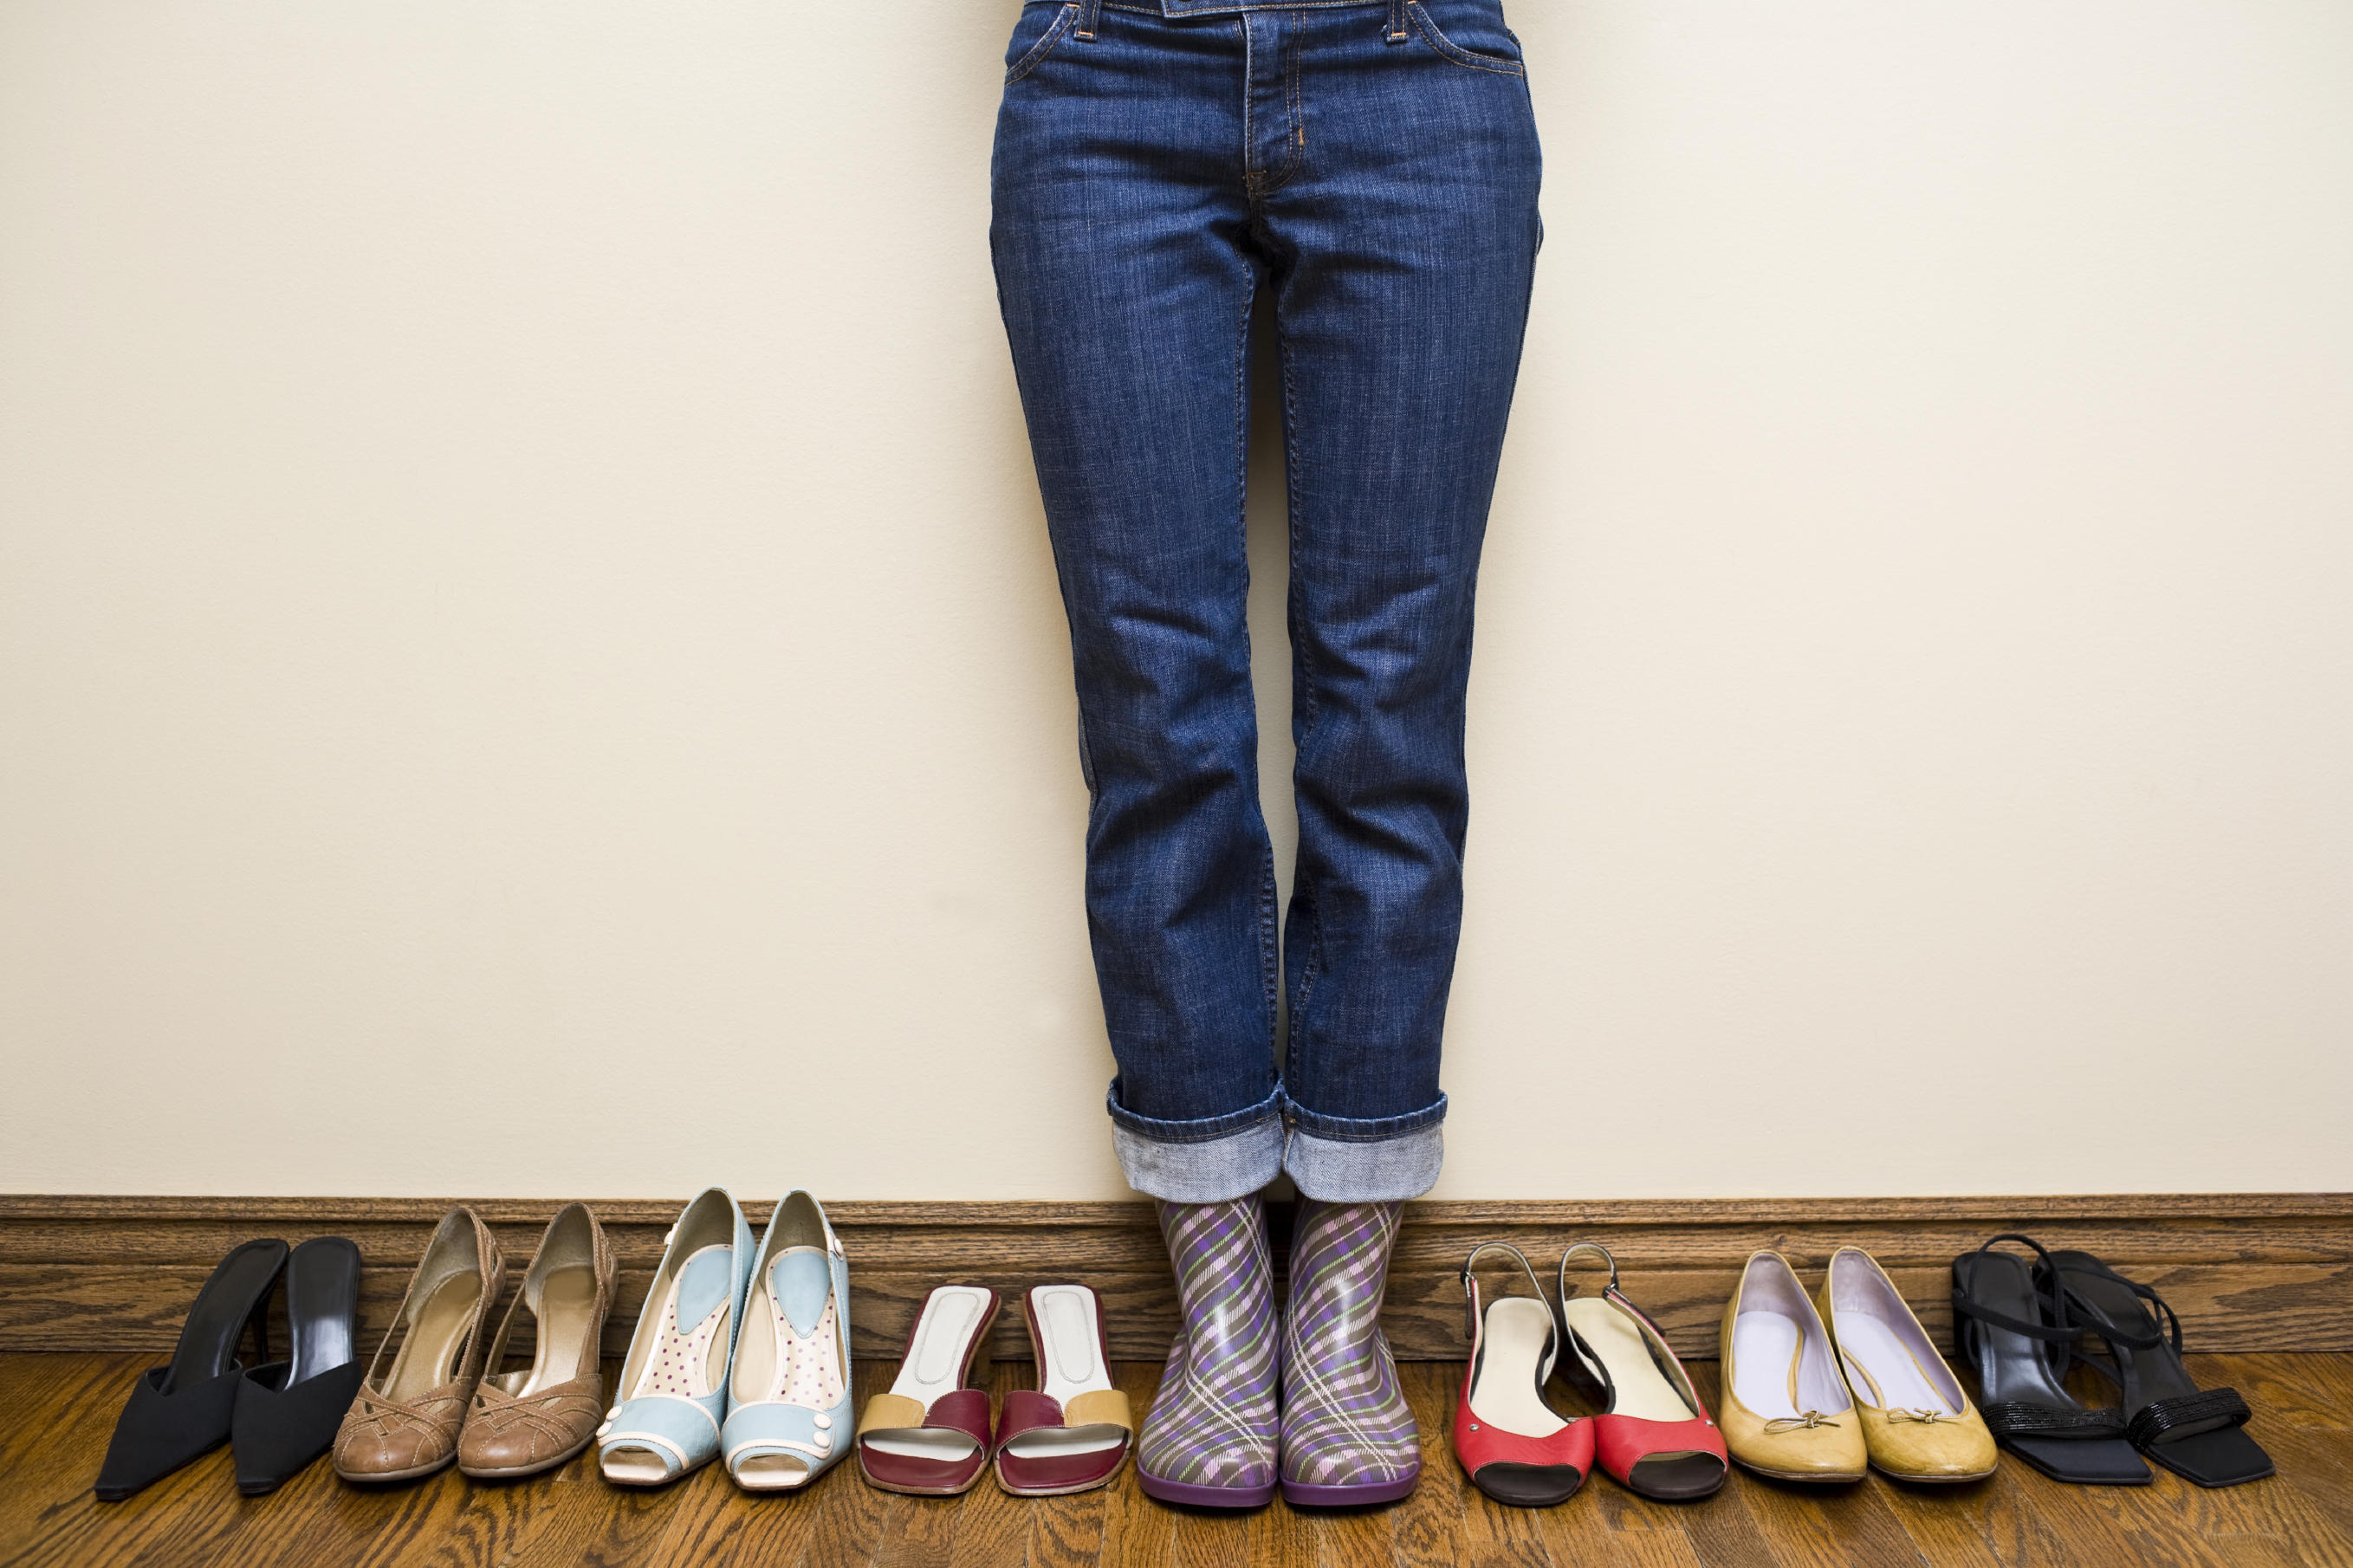 picture of woman with shoes